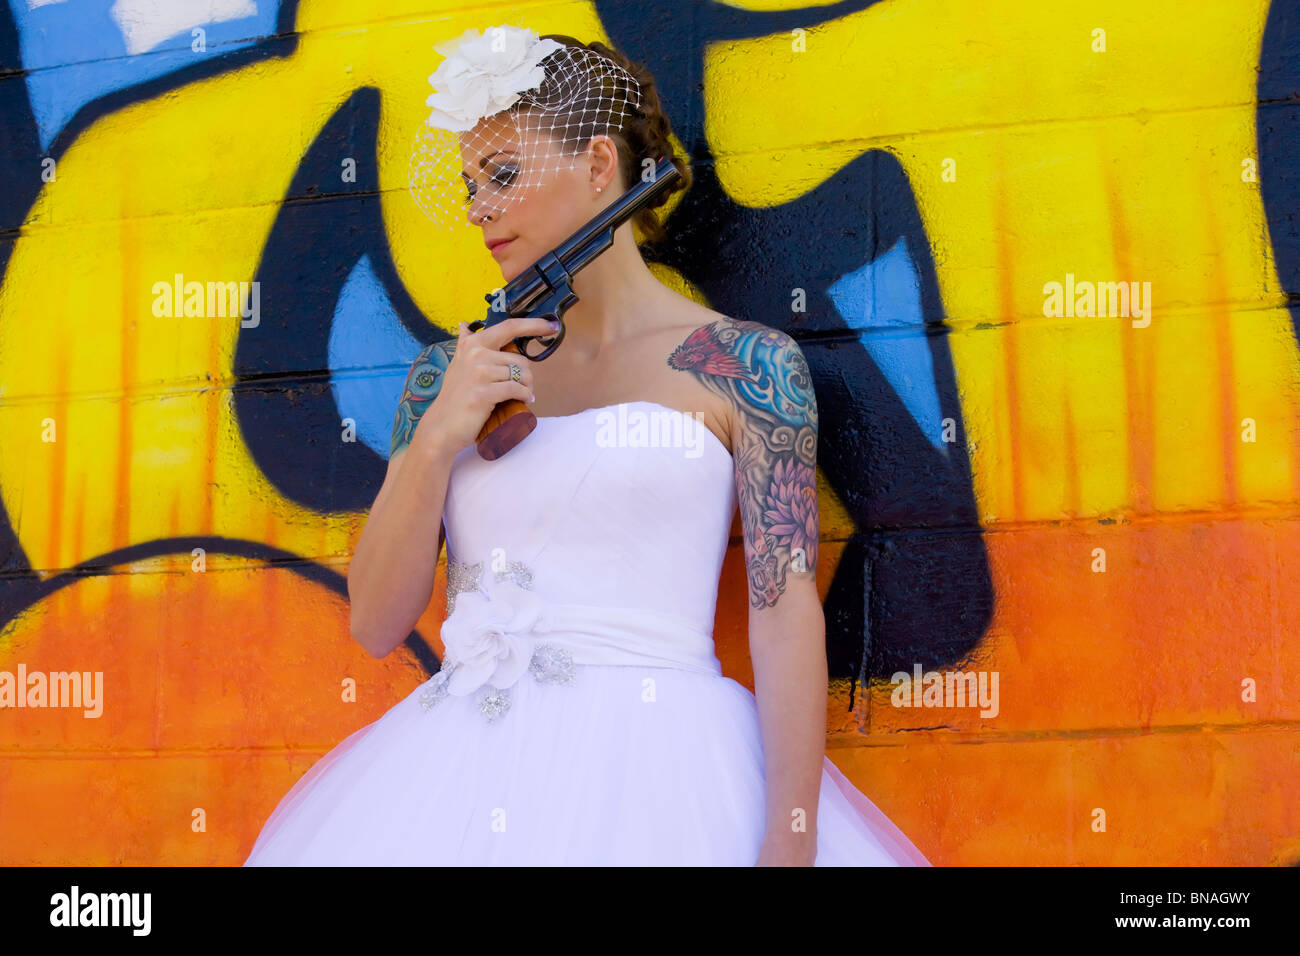 Tattooed bride against graffiti background with hand gun - Stock Image